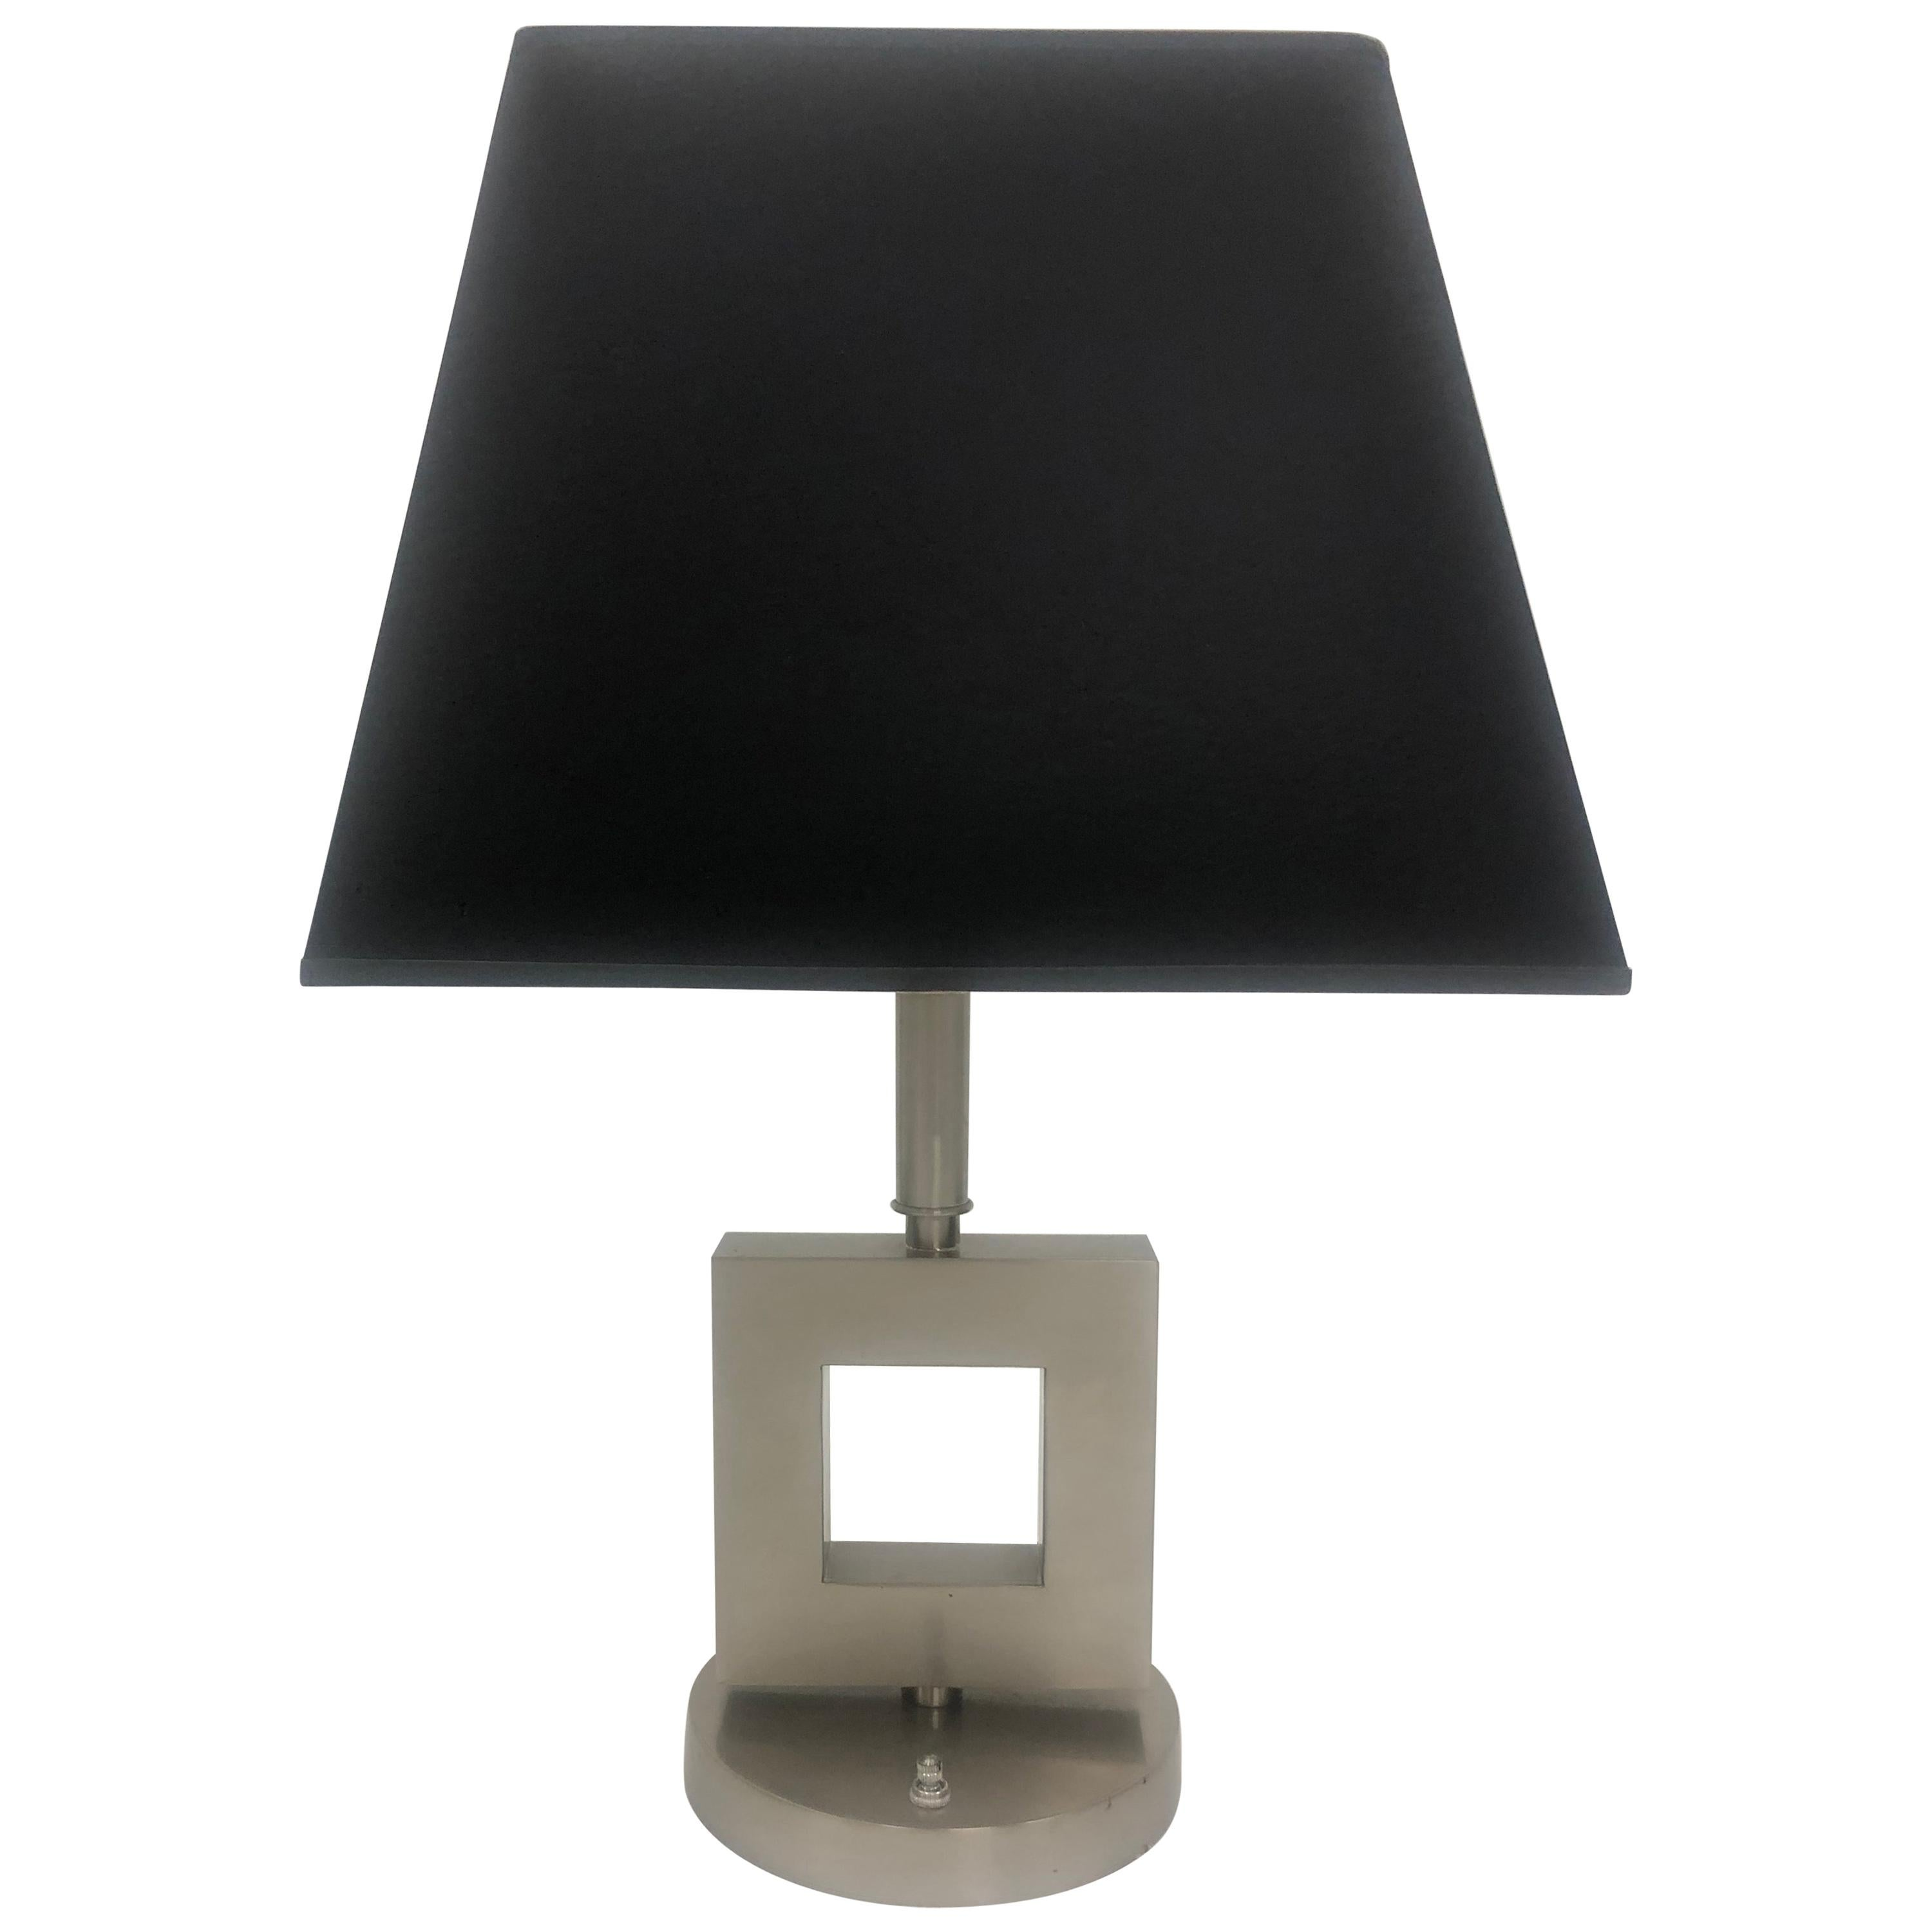 Stainless Brushed Steel Geometric Table Lamp